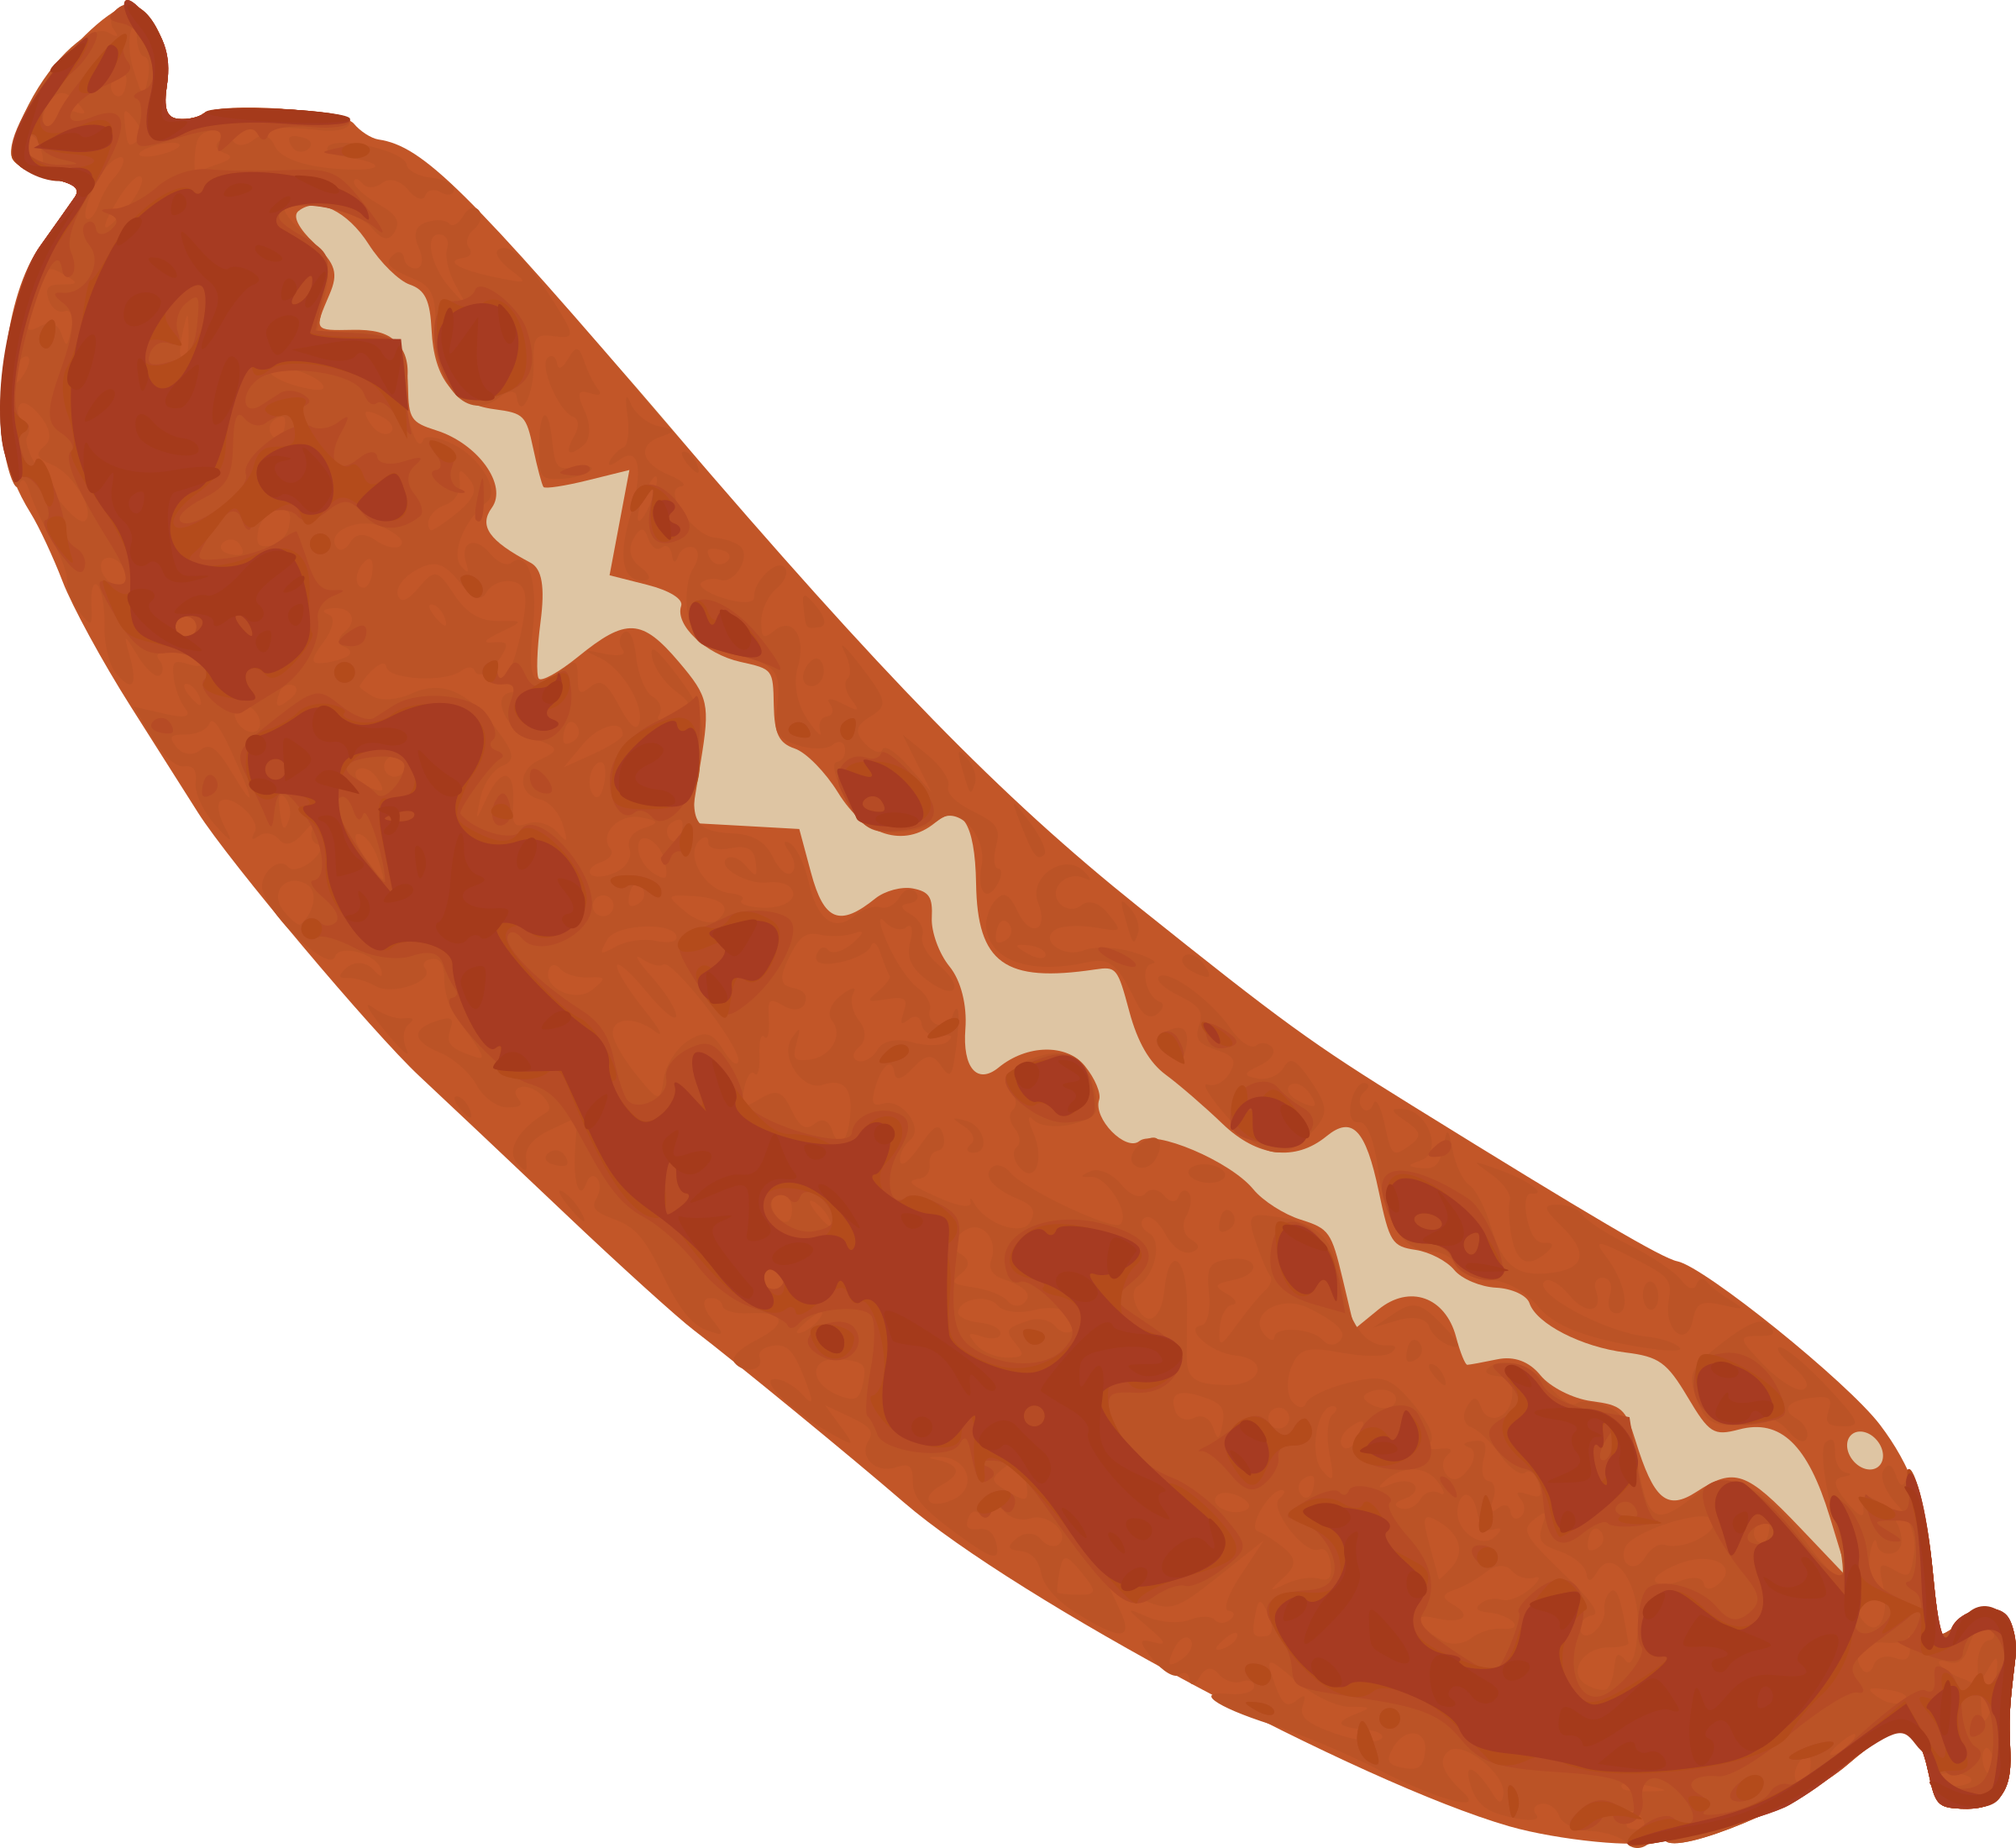 Roasting hot dog clipart black and white stock Hot Dog PNG Transparent Images (63+) black and white stock